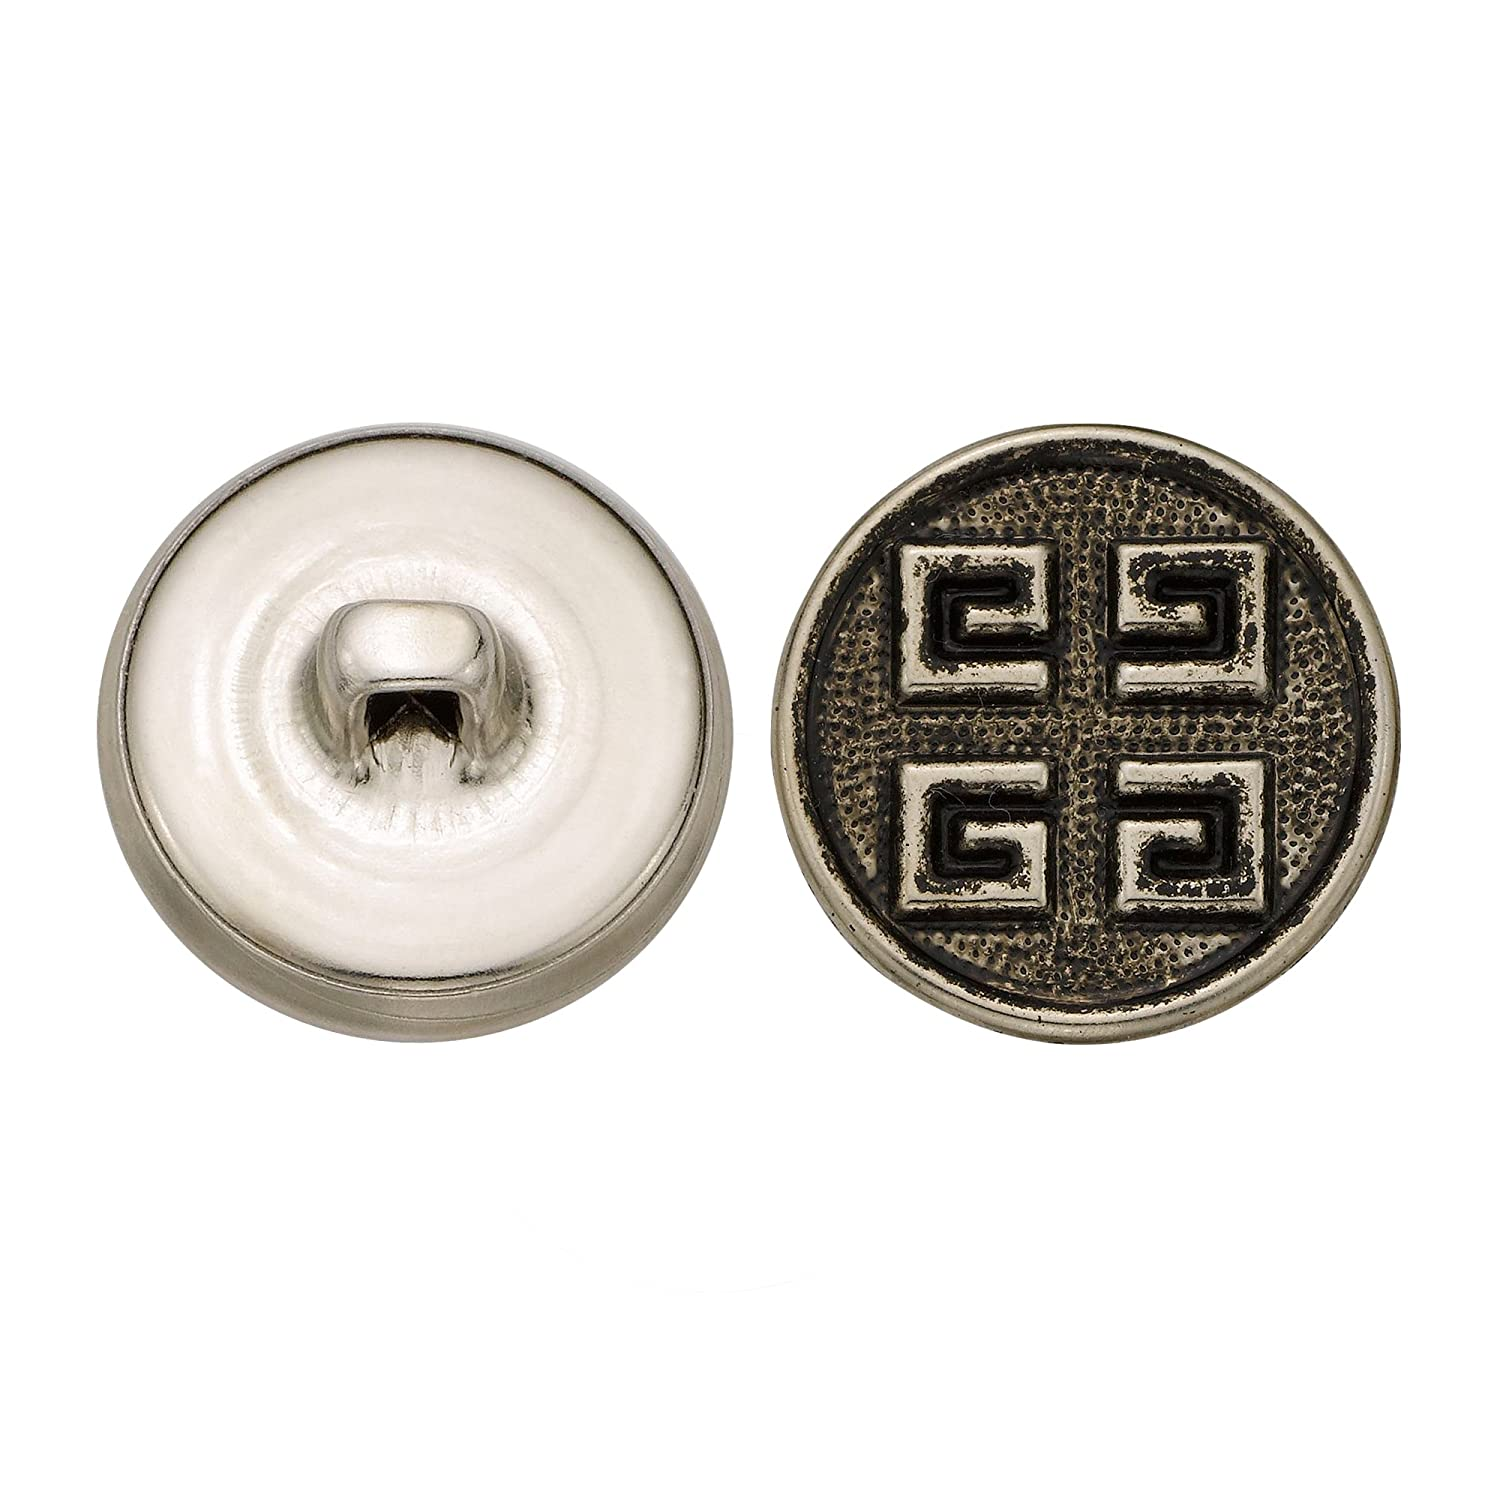 Size 30 Ligne C/&C Metal Products 5205 Modern Metal Button 36-Pack C/&C Metal Products Corp Antique Nickel